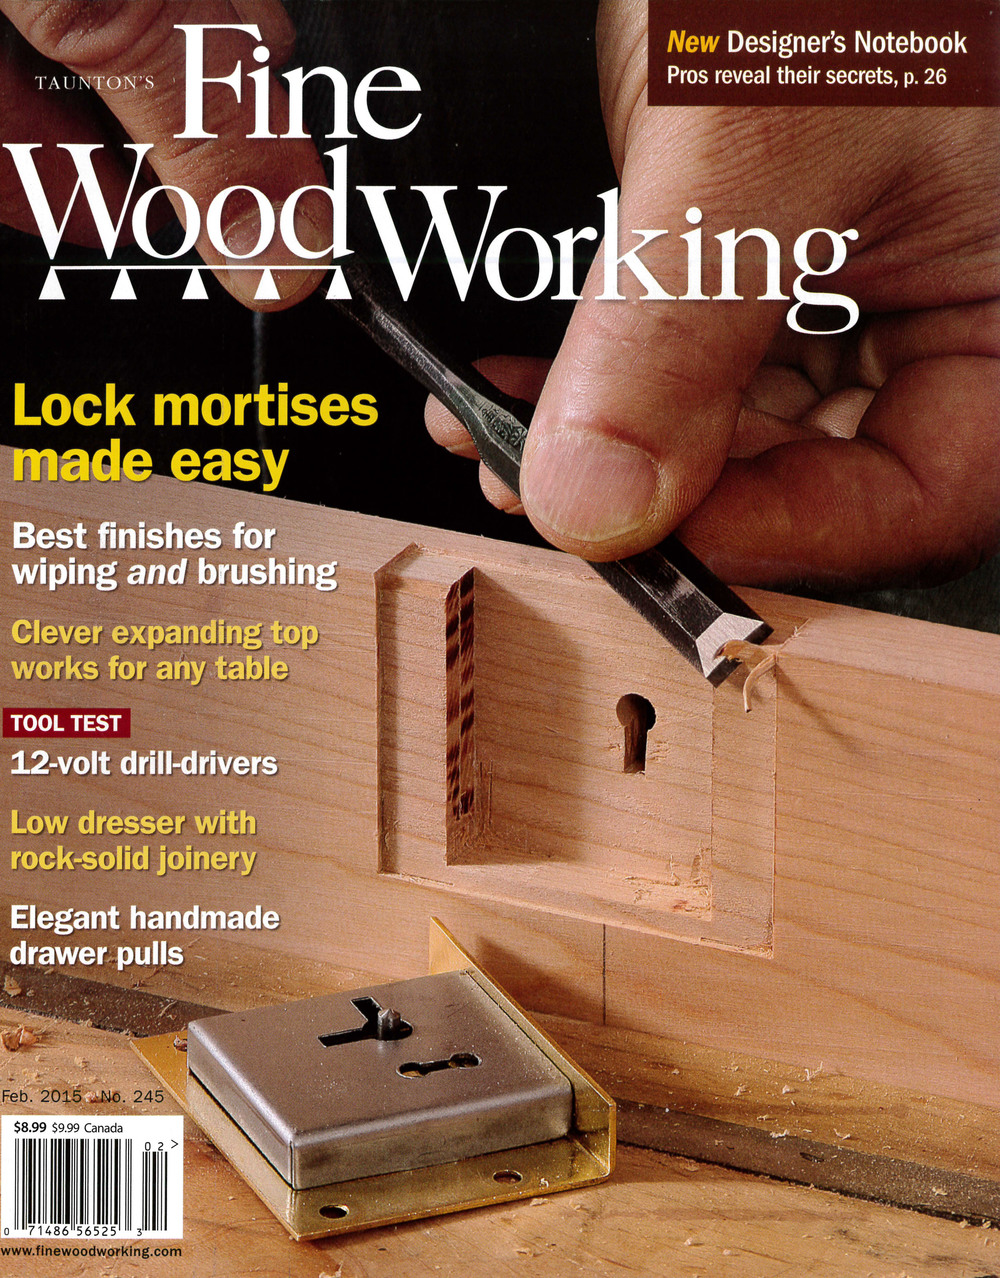 a sideboard made of black cherry, designed and handcrafted by mike korsak, is featured in fine woodworking magazine